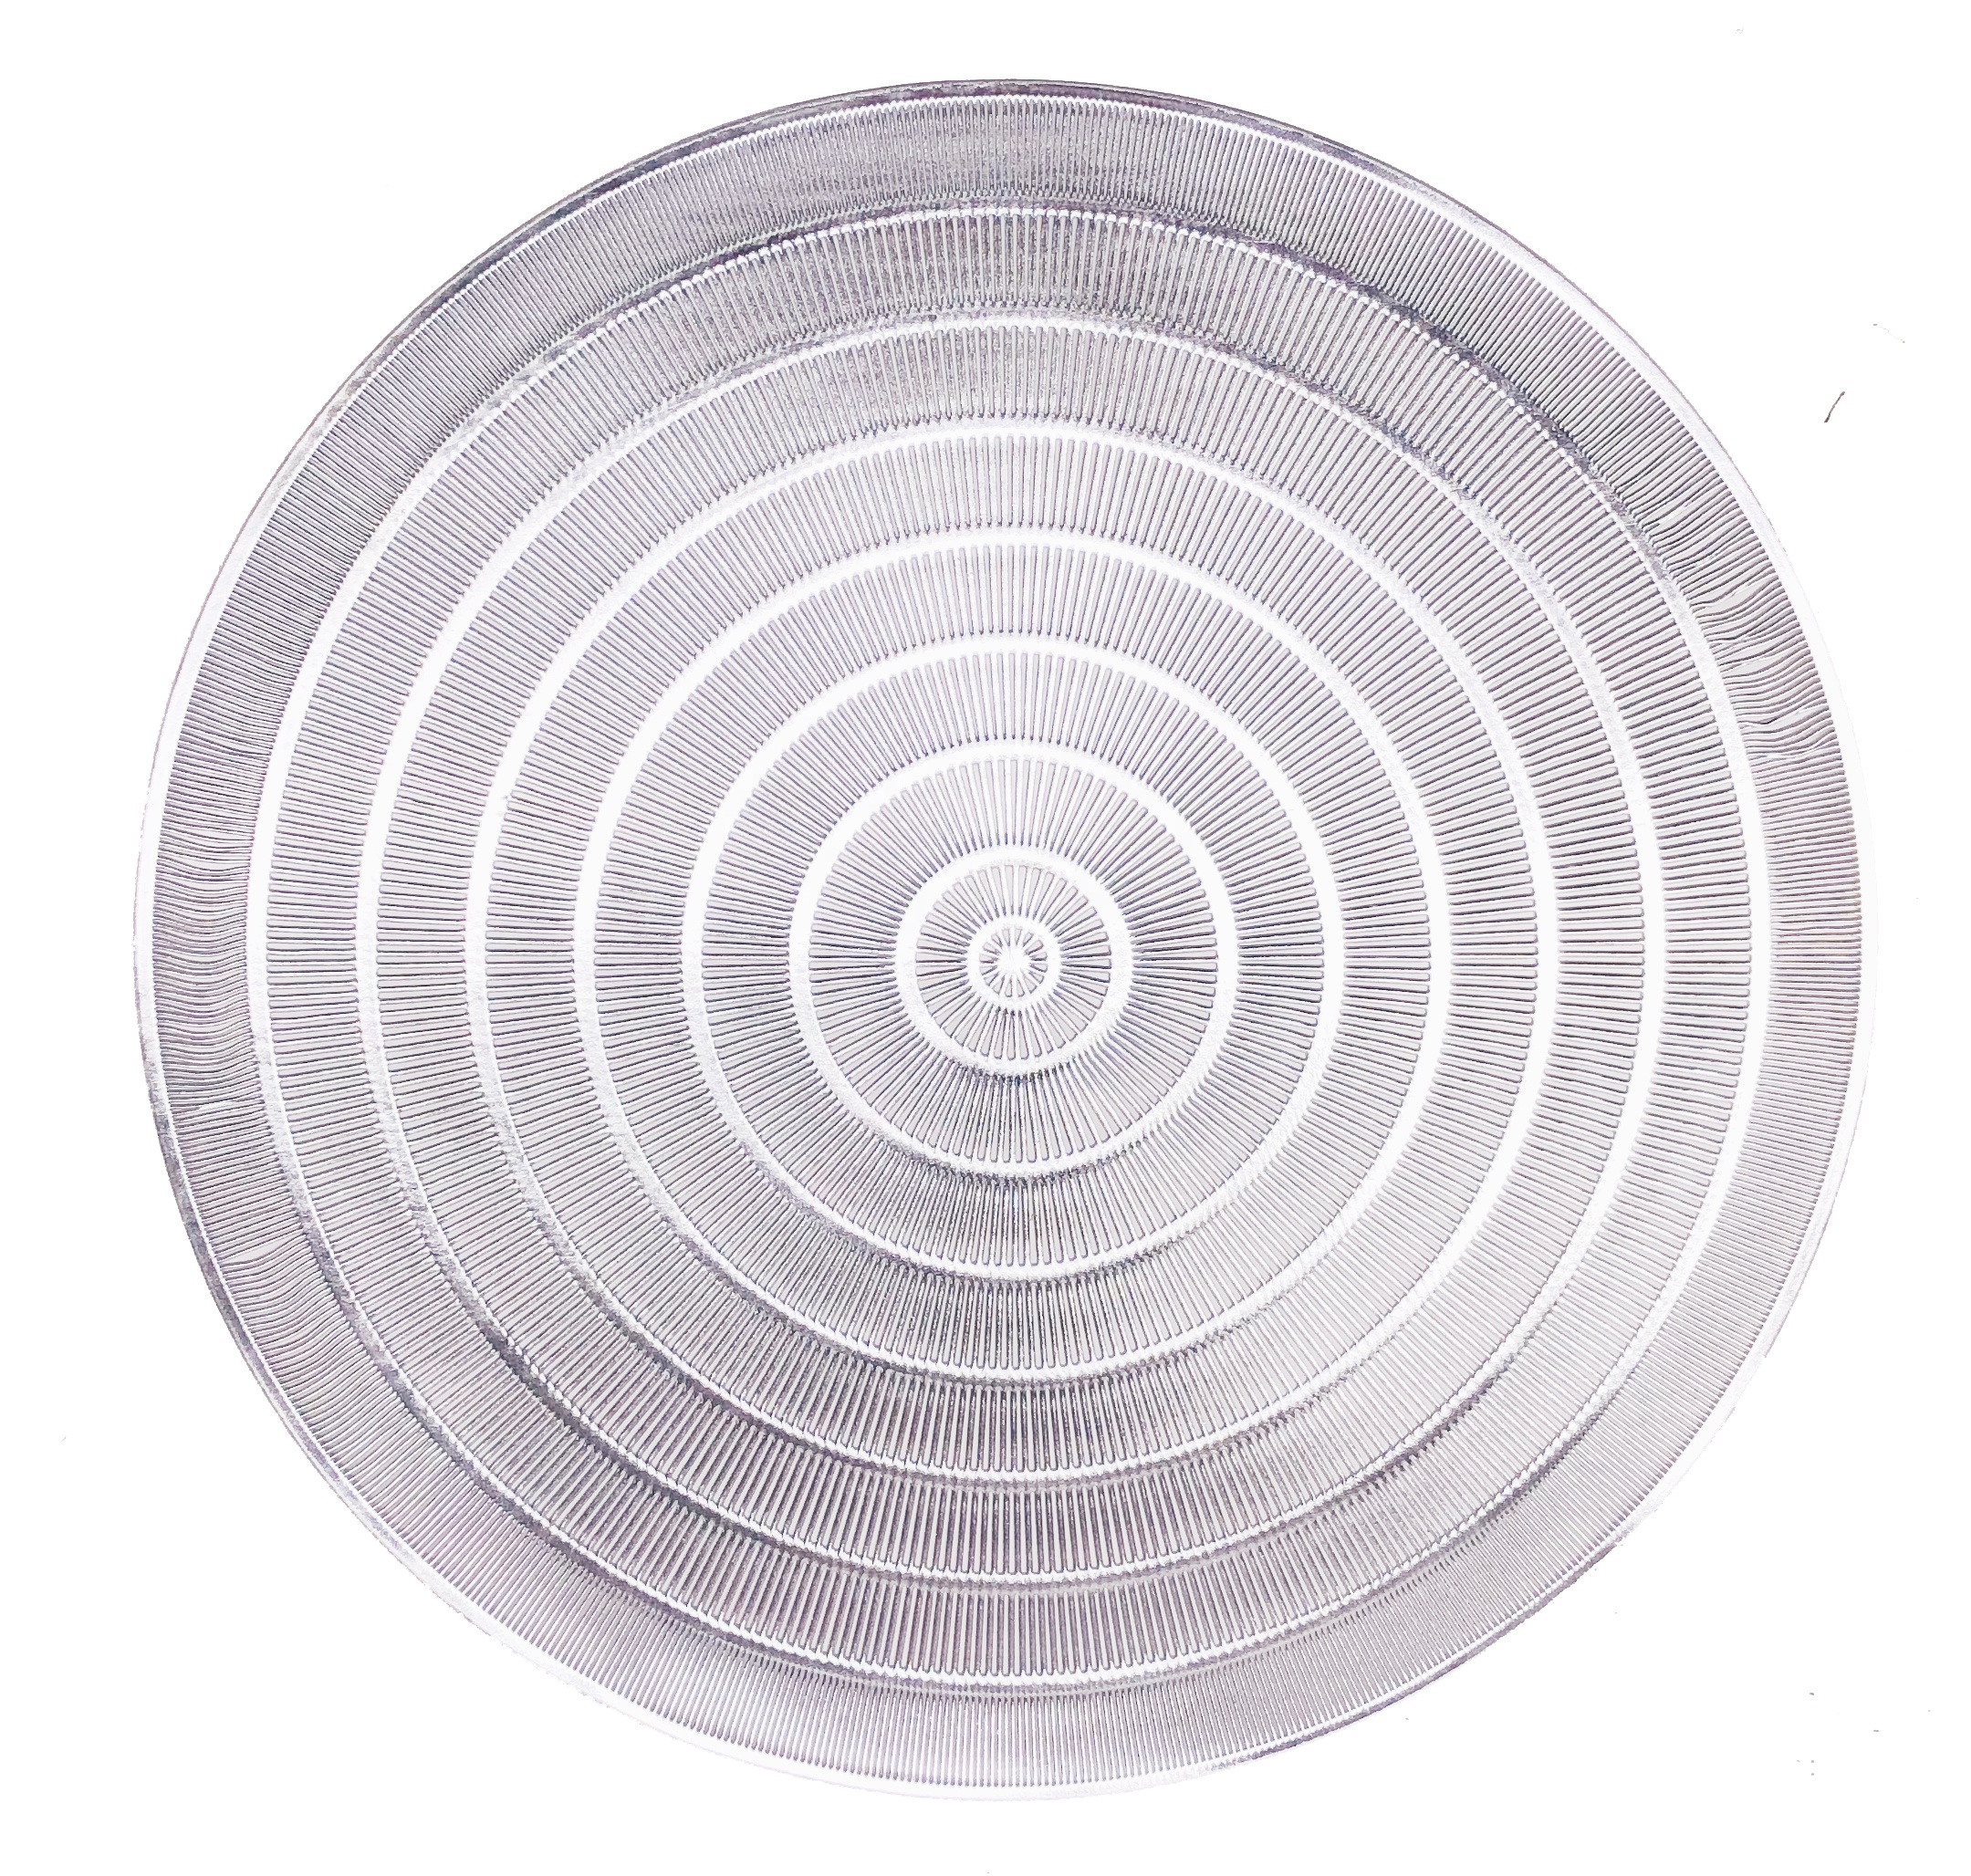 Tabletex Hot Sale PVC Placemats Set of 6 Washable Placemats Hollow Round Table mats for Dining Table Silver Gold For Christmas